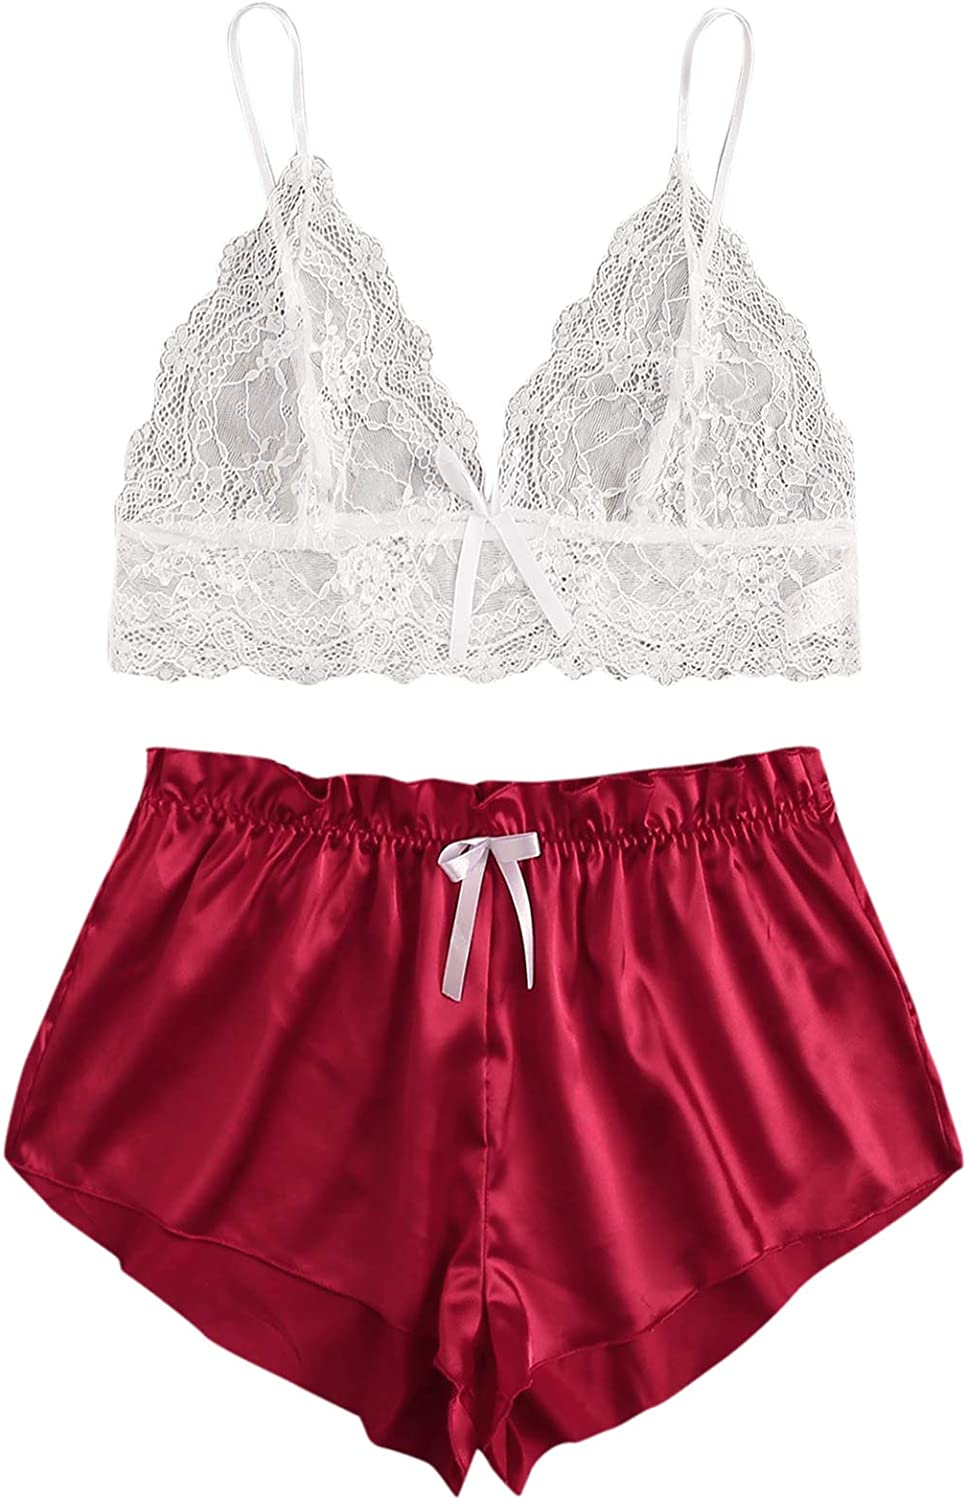 Milumia Womens Plus Size Lingerie Set Lace Cami Top with Shorts Sleepwear